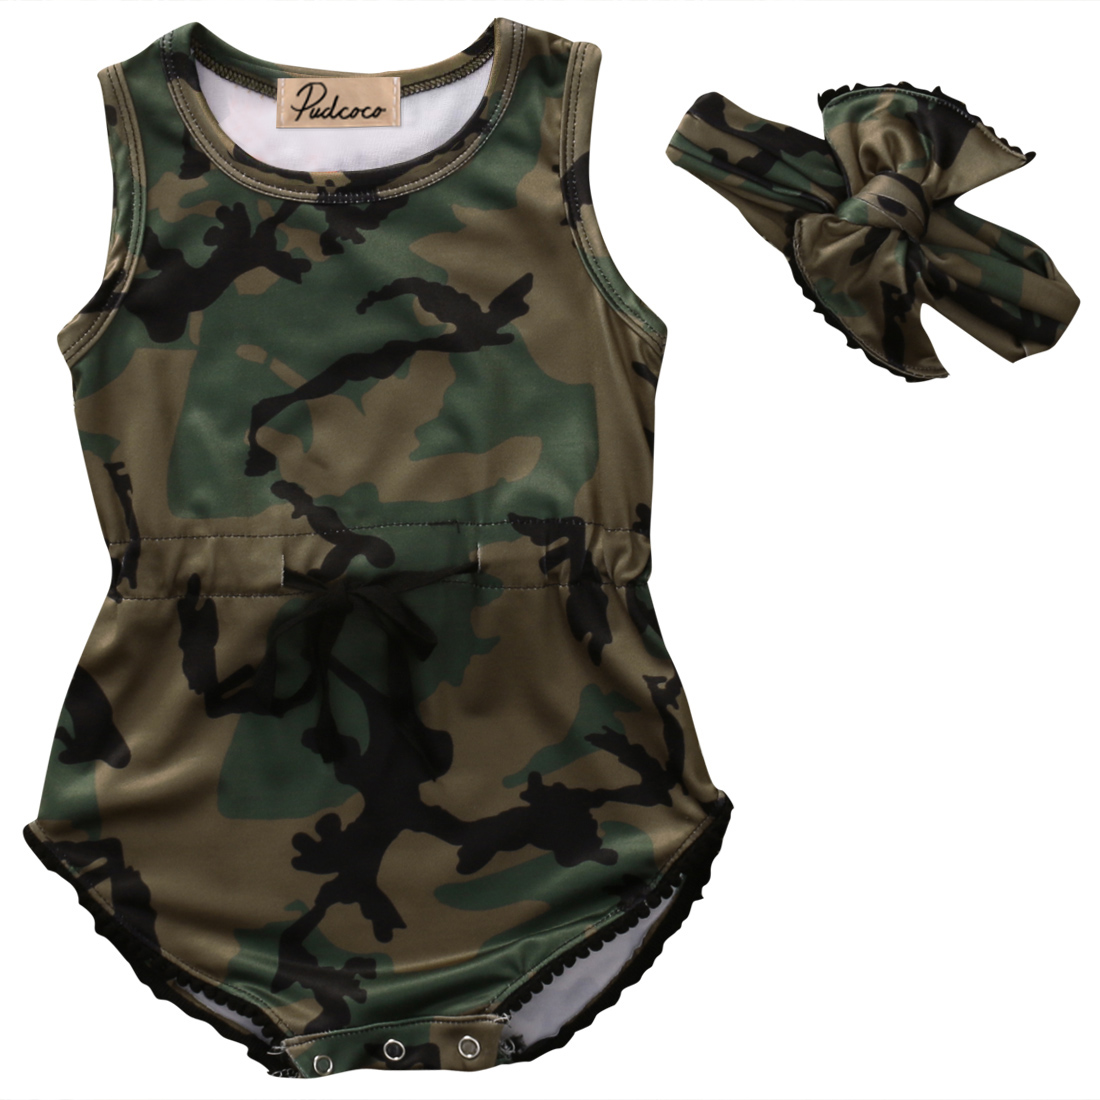 Toddler Baby Girls Camo   Romper   Sleeveless High Waist Jumpsuit Headband Clothes Outfits 0-24M